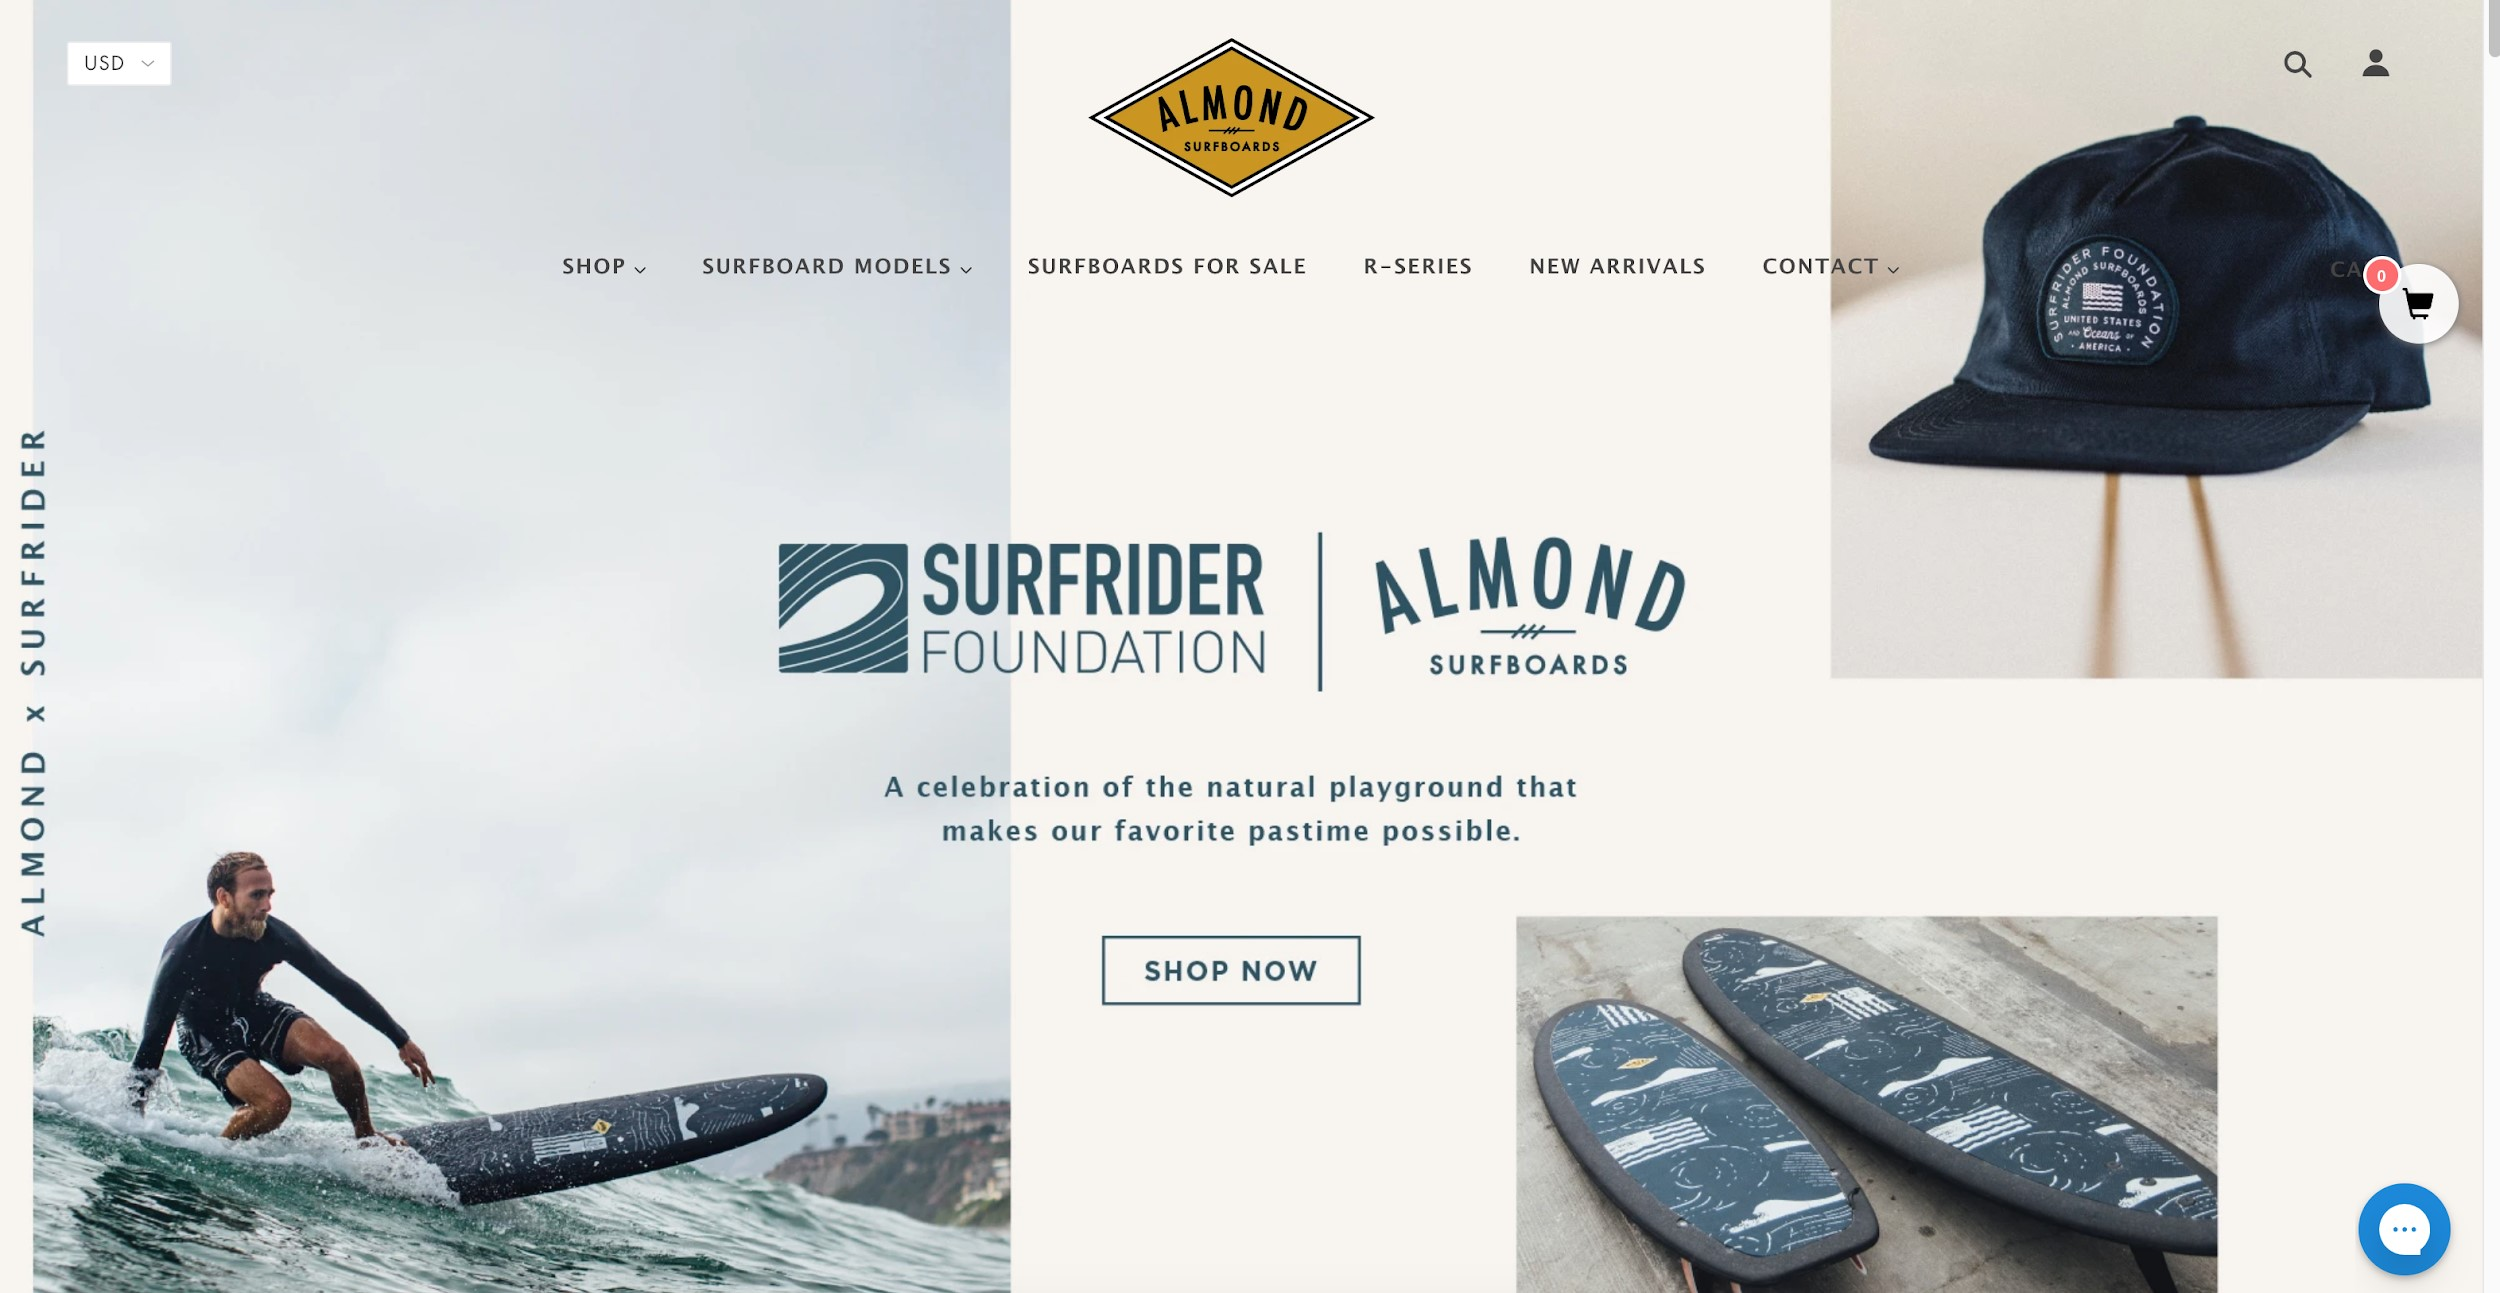 Almond Surfboards best e commerce sites